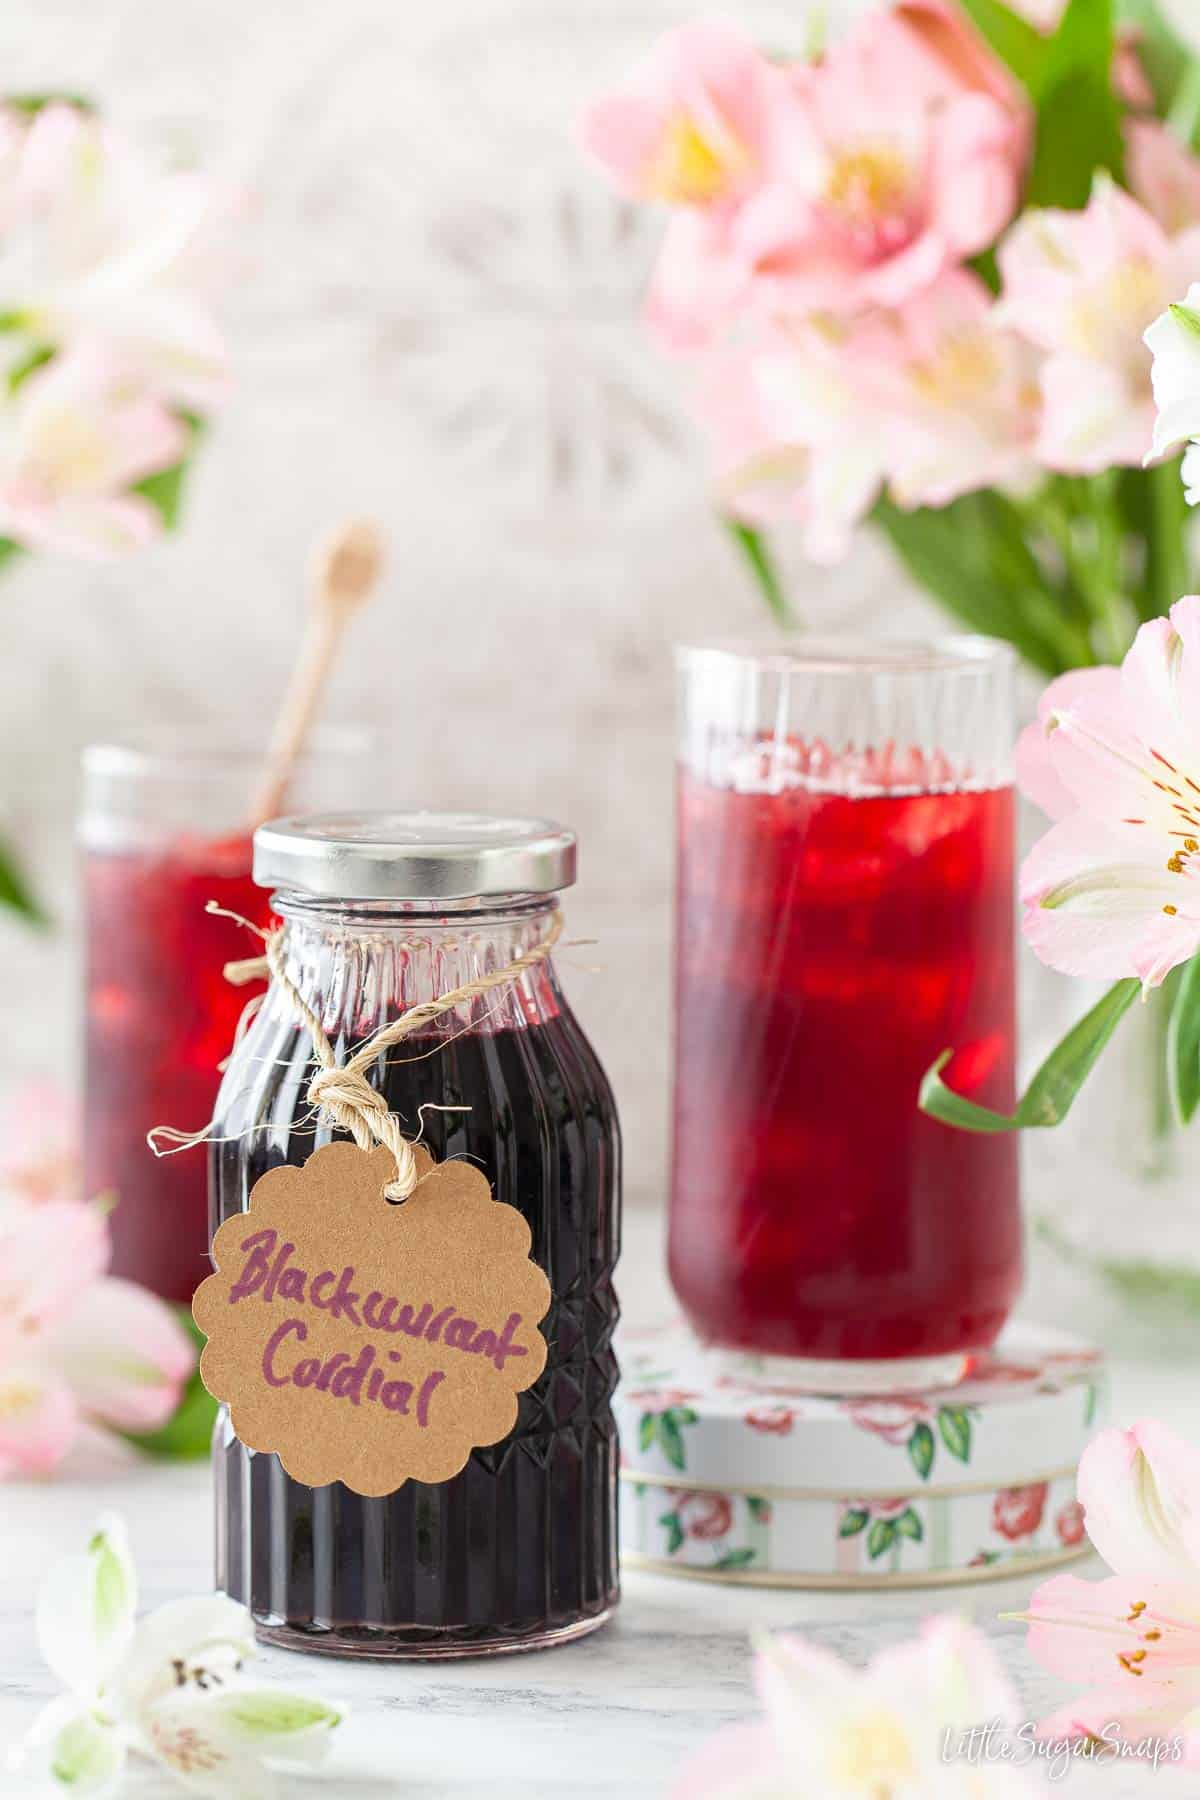 A bottle of blackcurrant cordial and drinks made from it in tall glasses